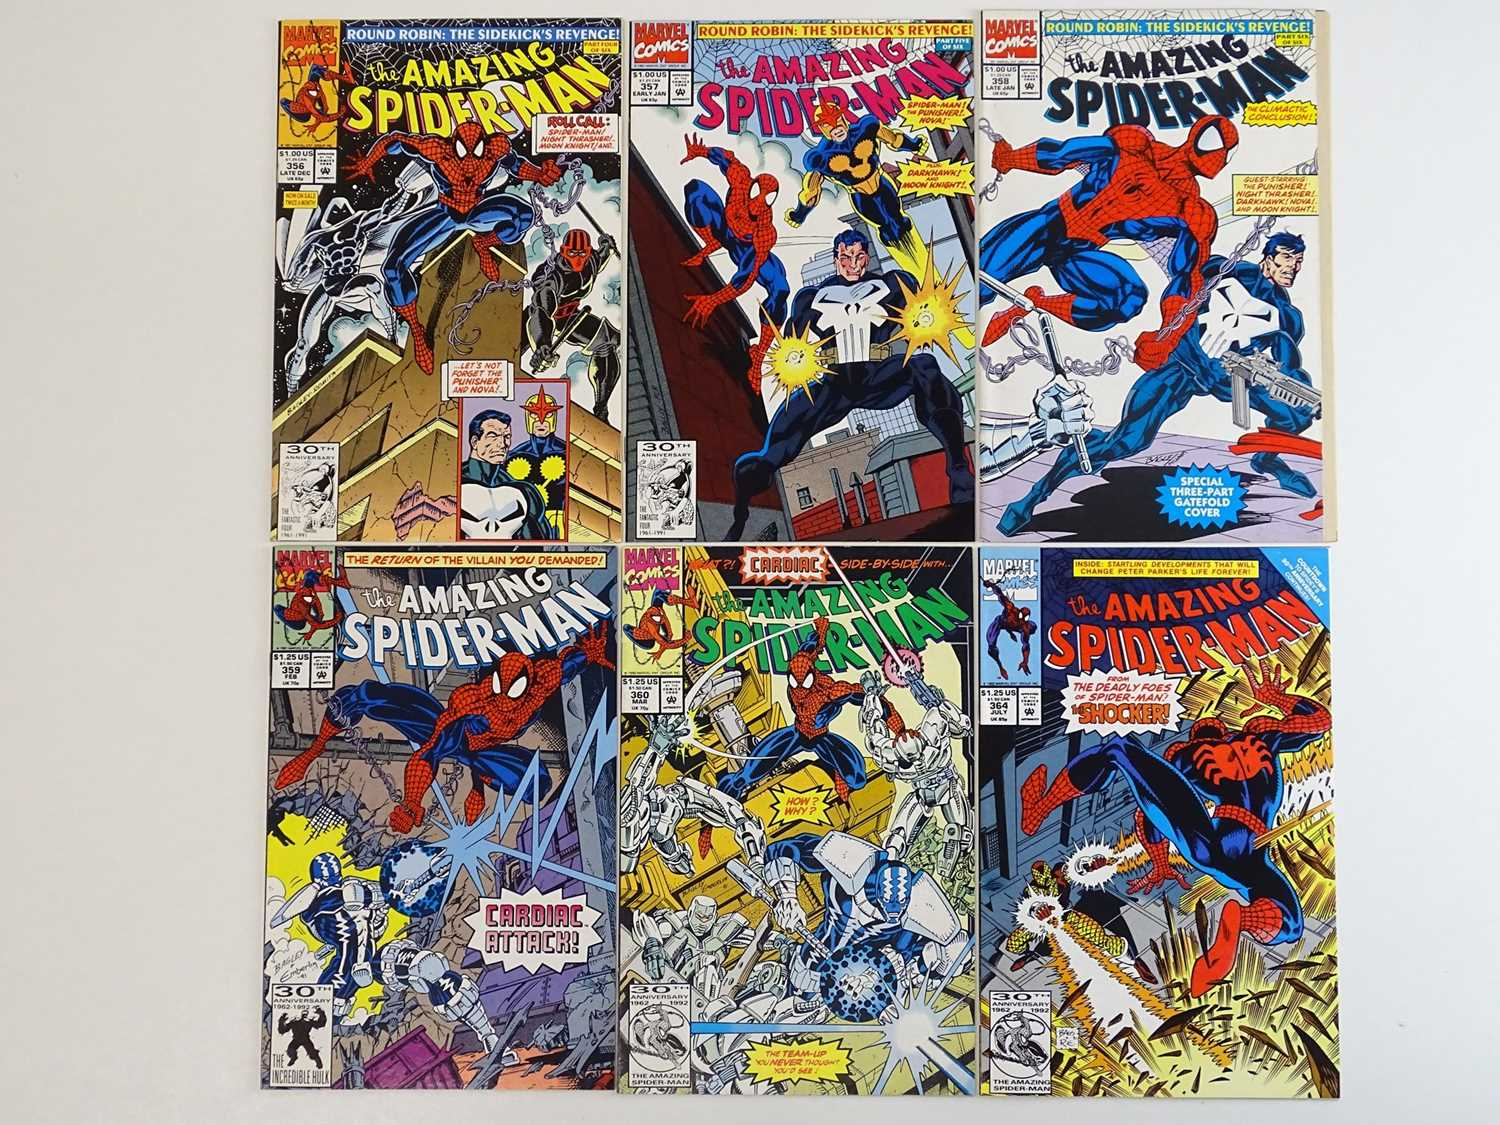 AMAZING SPIDER-MAN #356, 357, 358, 359, 360, 364 - (6 in Lot) - (1991/92 - MARVEL) - Includes